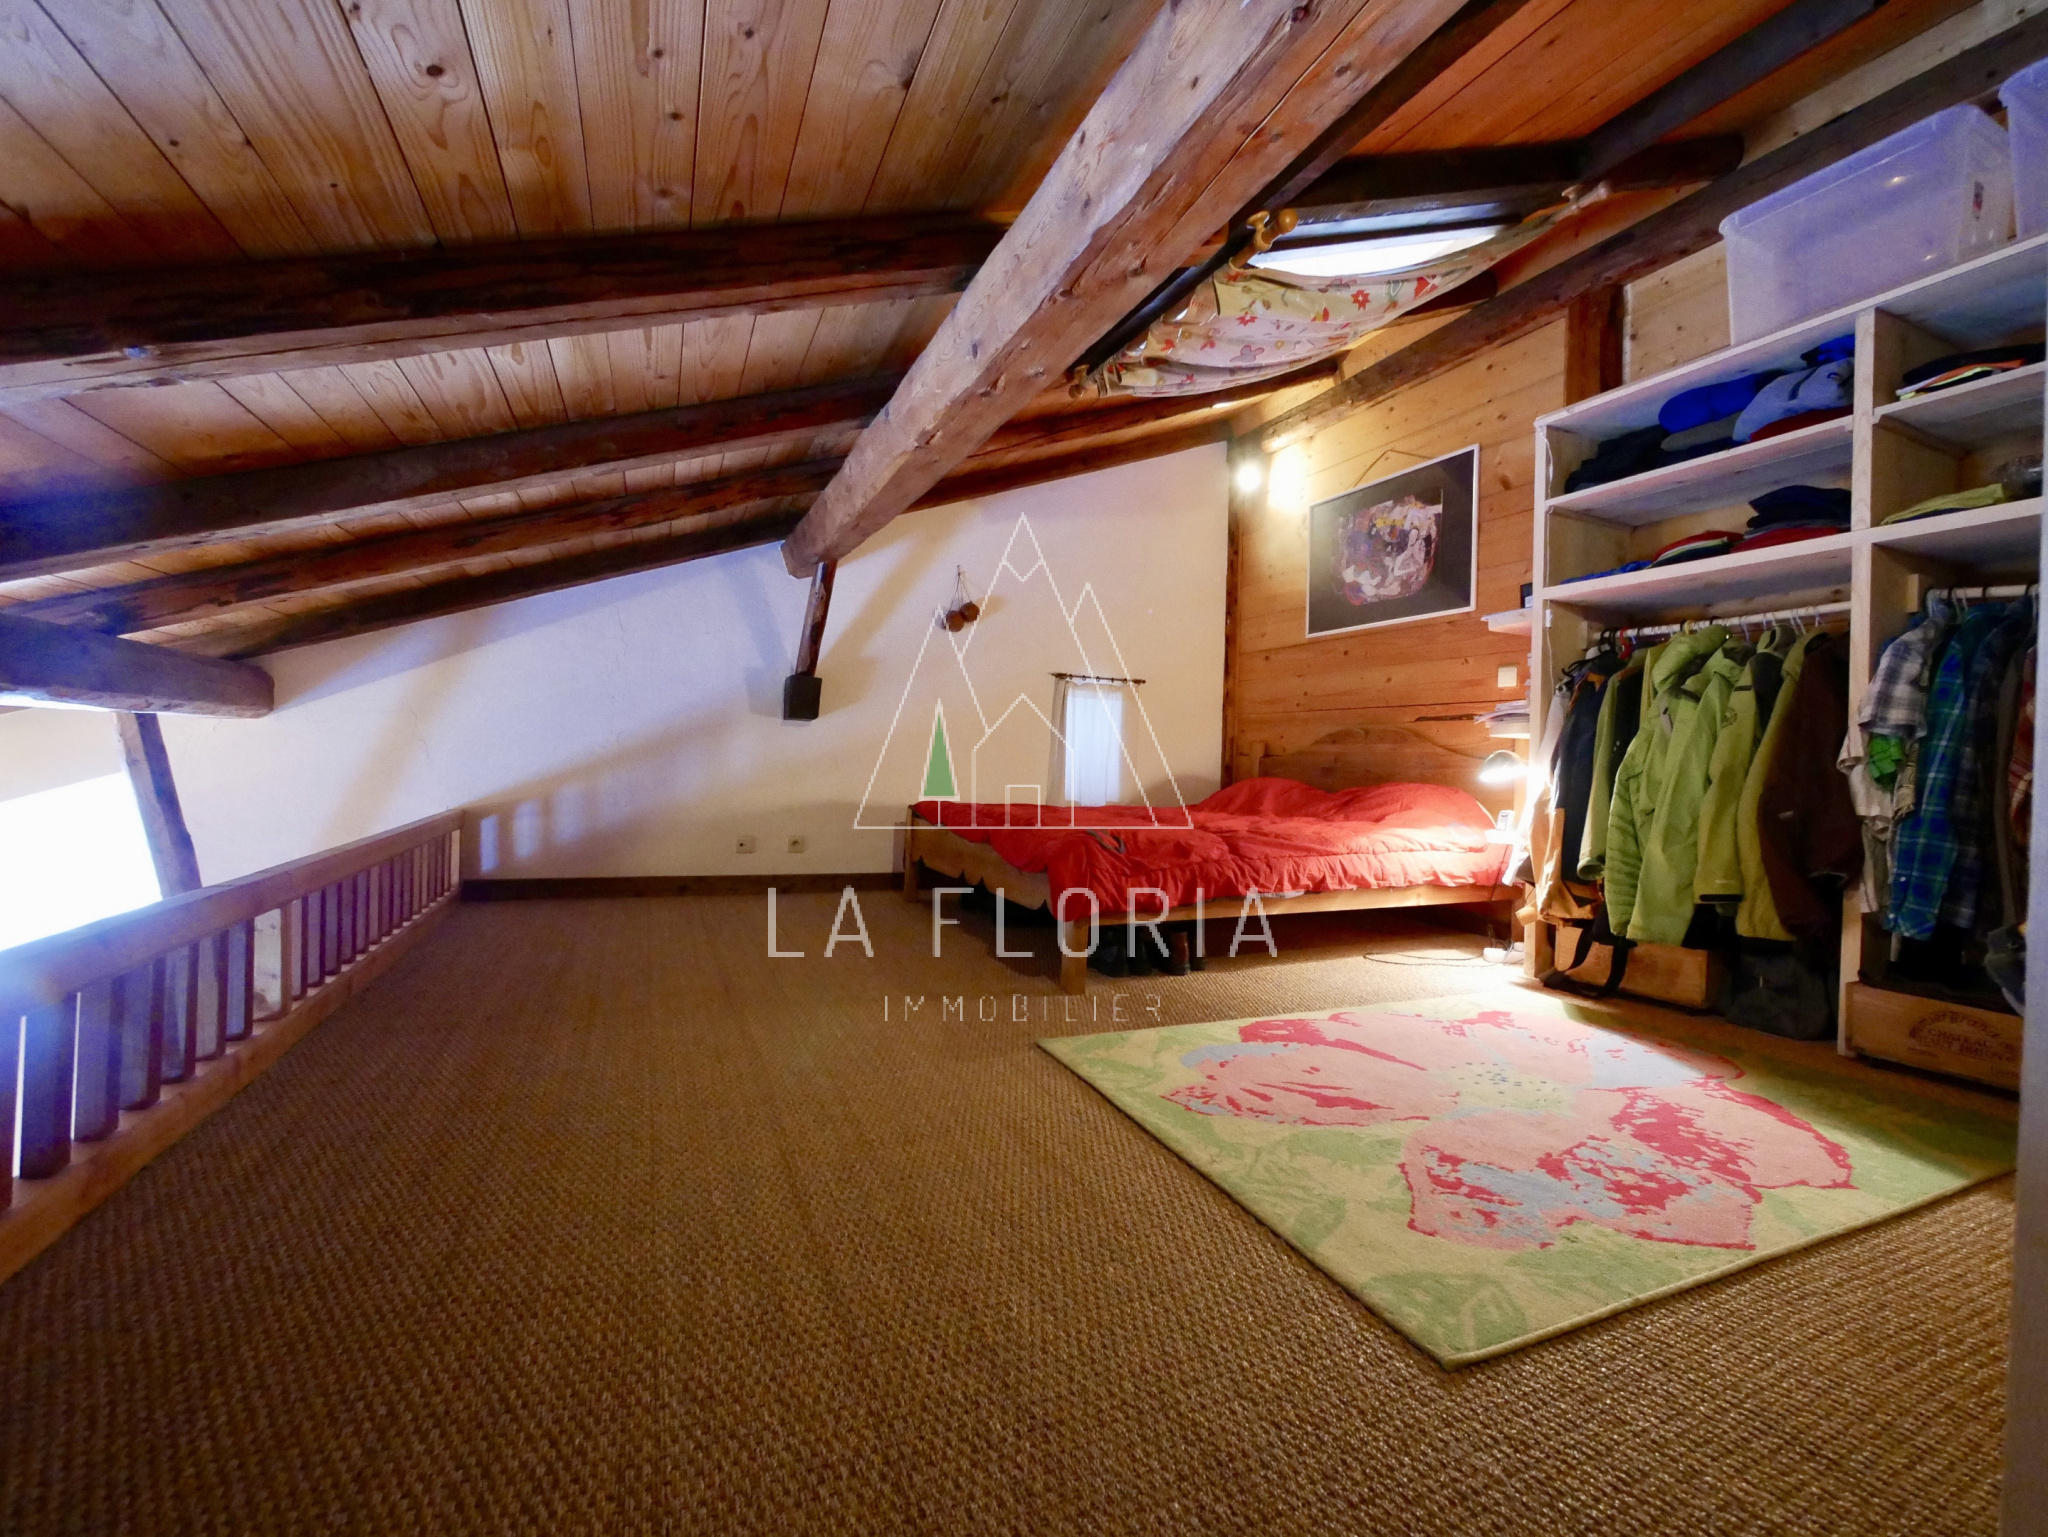 SEMI DETACHED FARM CURRENTLY ORGANIZED AS 3 APARTMENTS, RESIDUAL BUILDING RIGHTS FOR A CHALET, CHAMONIX NEAR GRANDS MONTETS